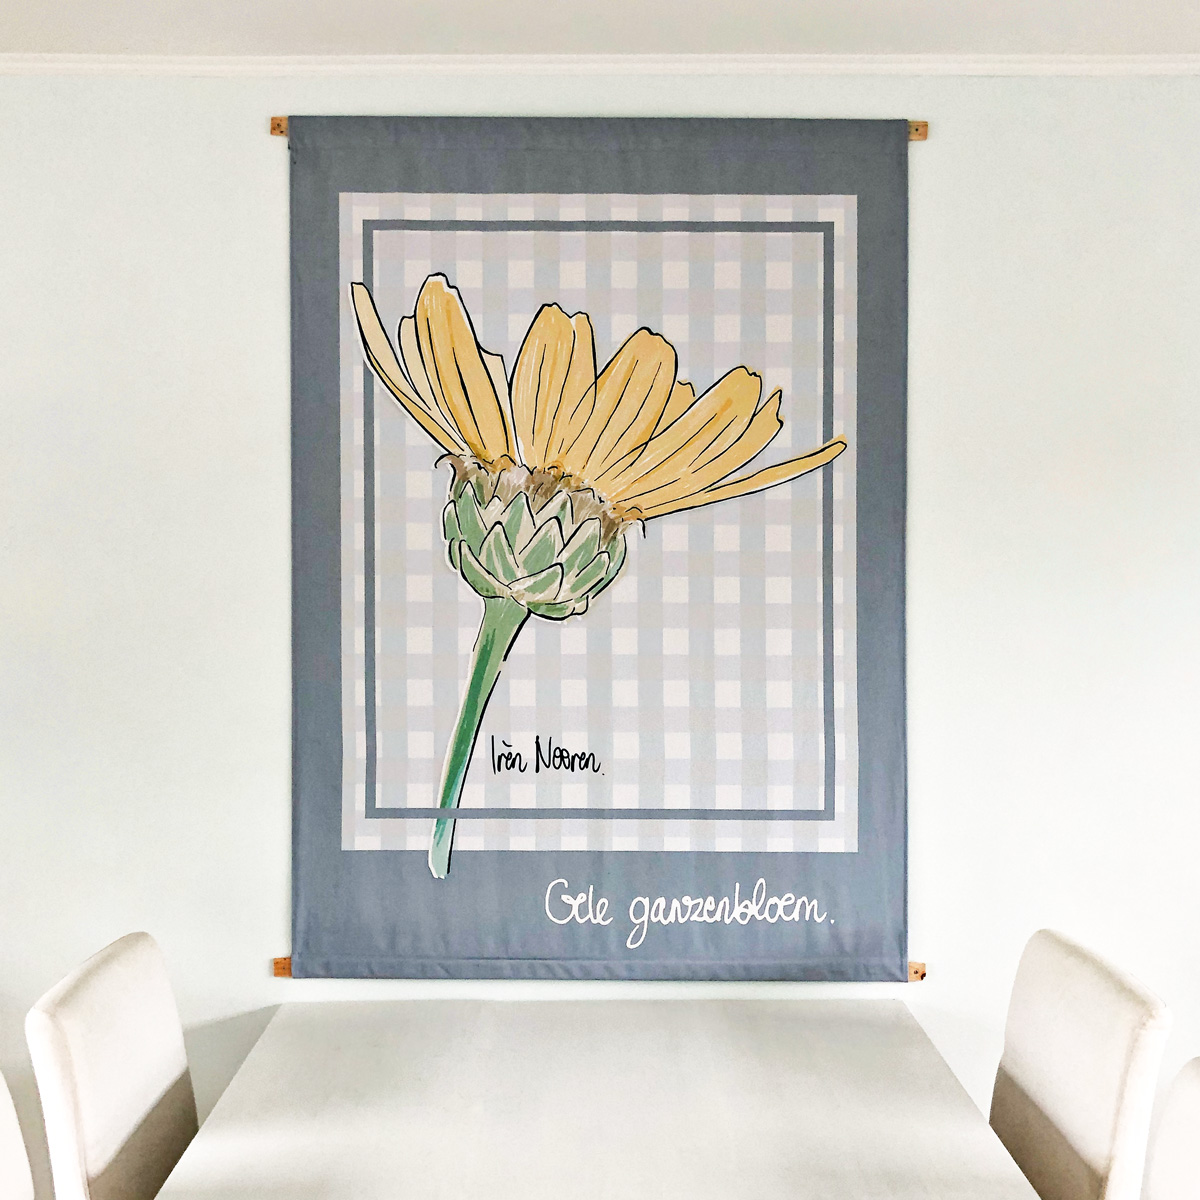 Corn daisy printed on a wall tapestry